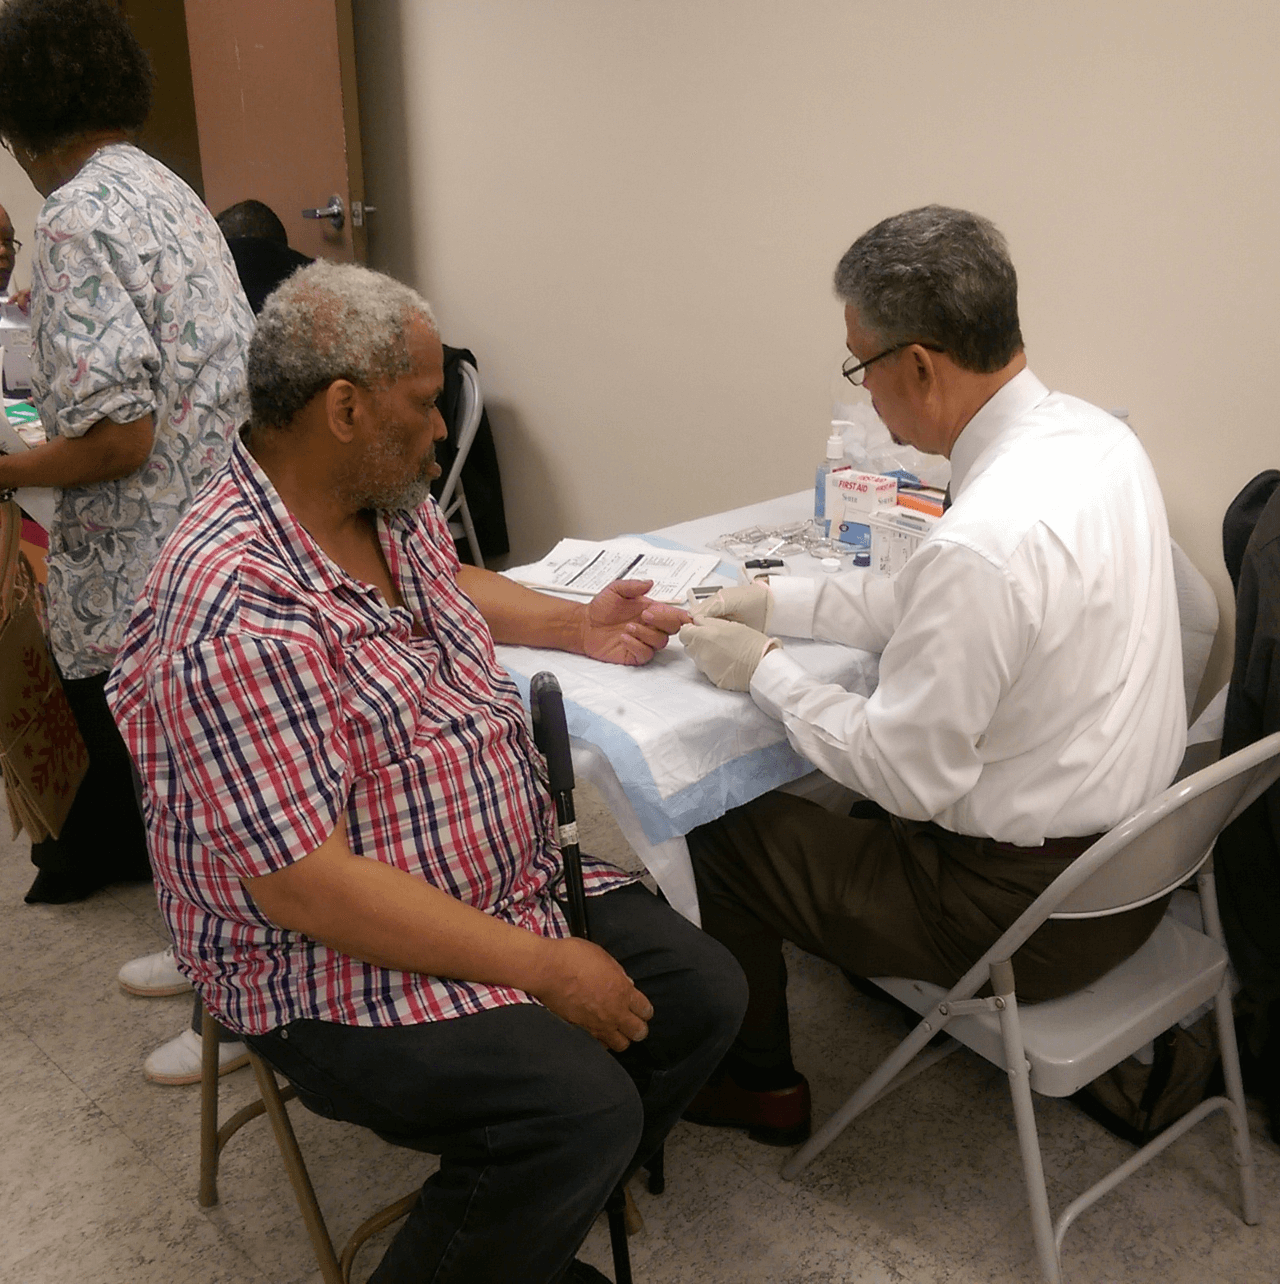 Resident having his blood sugar tested